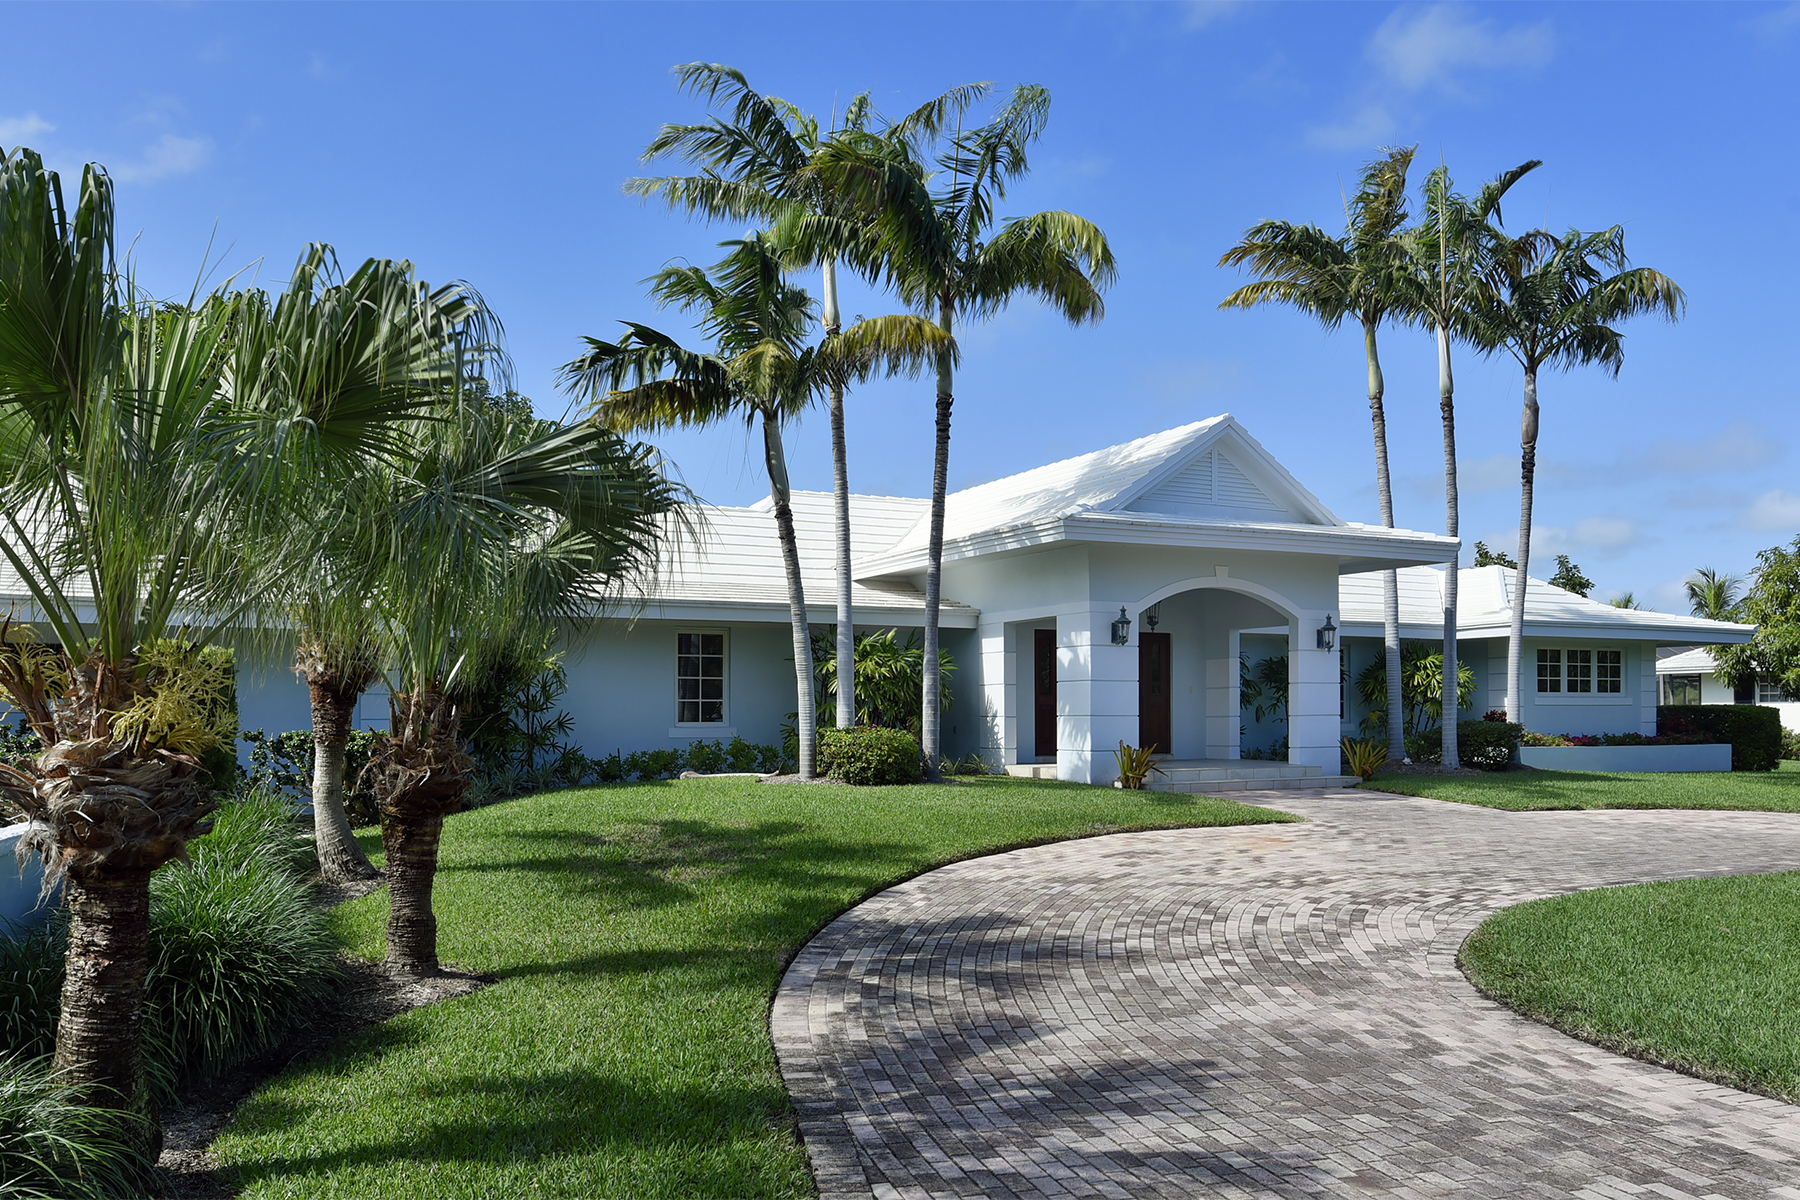 Moradia para Venda às Charming Waterfront Home at Ocean Reef 15 Sunset Cay Road Ocean Reef Community, Key Largo, Florida, 33037 Estados Unidos